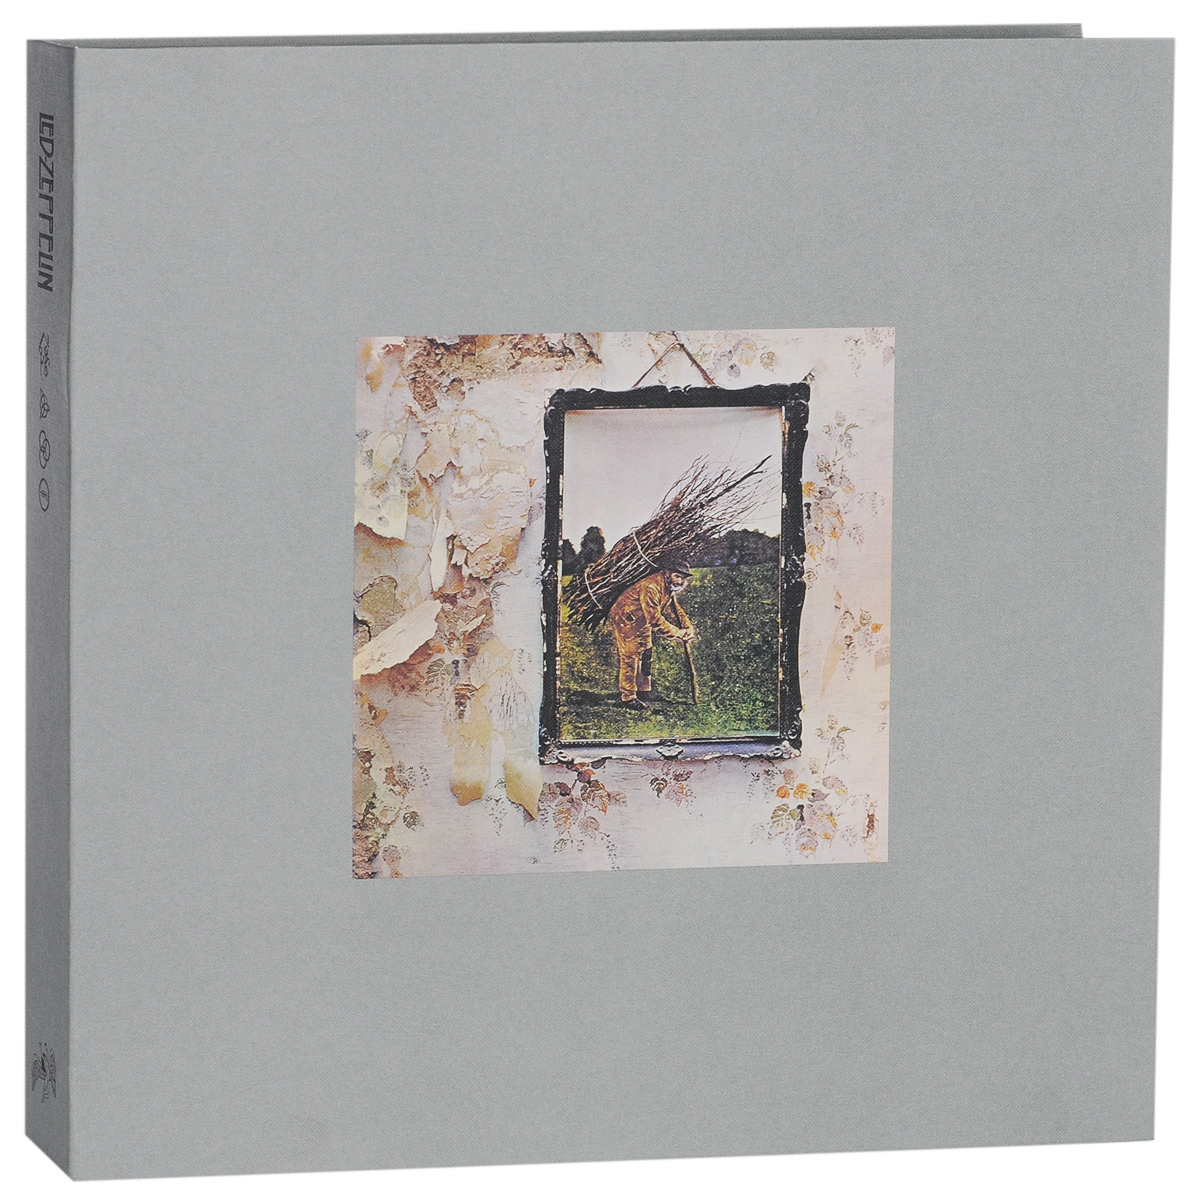 Led Zeppelin Led Zeppelin. IV. Super Deluxe Edition (2 LP + 2 CD) black girl original sound track recording